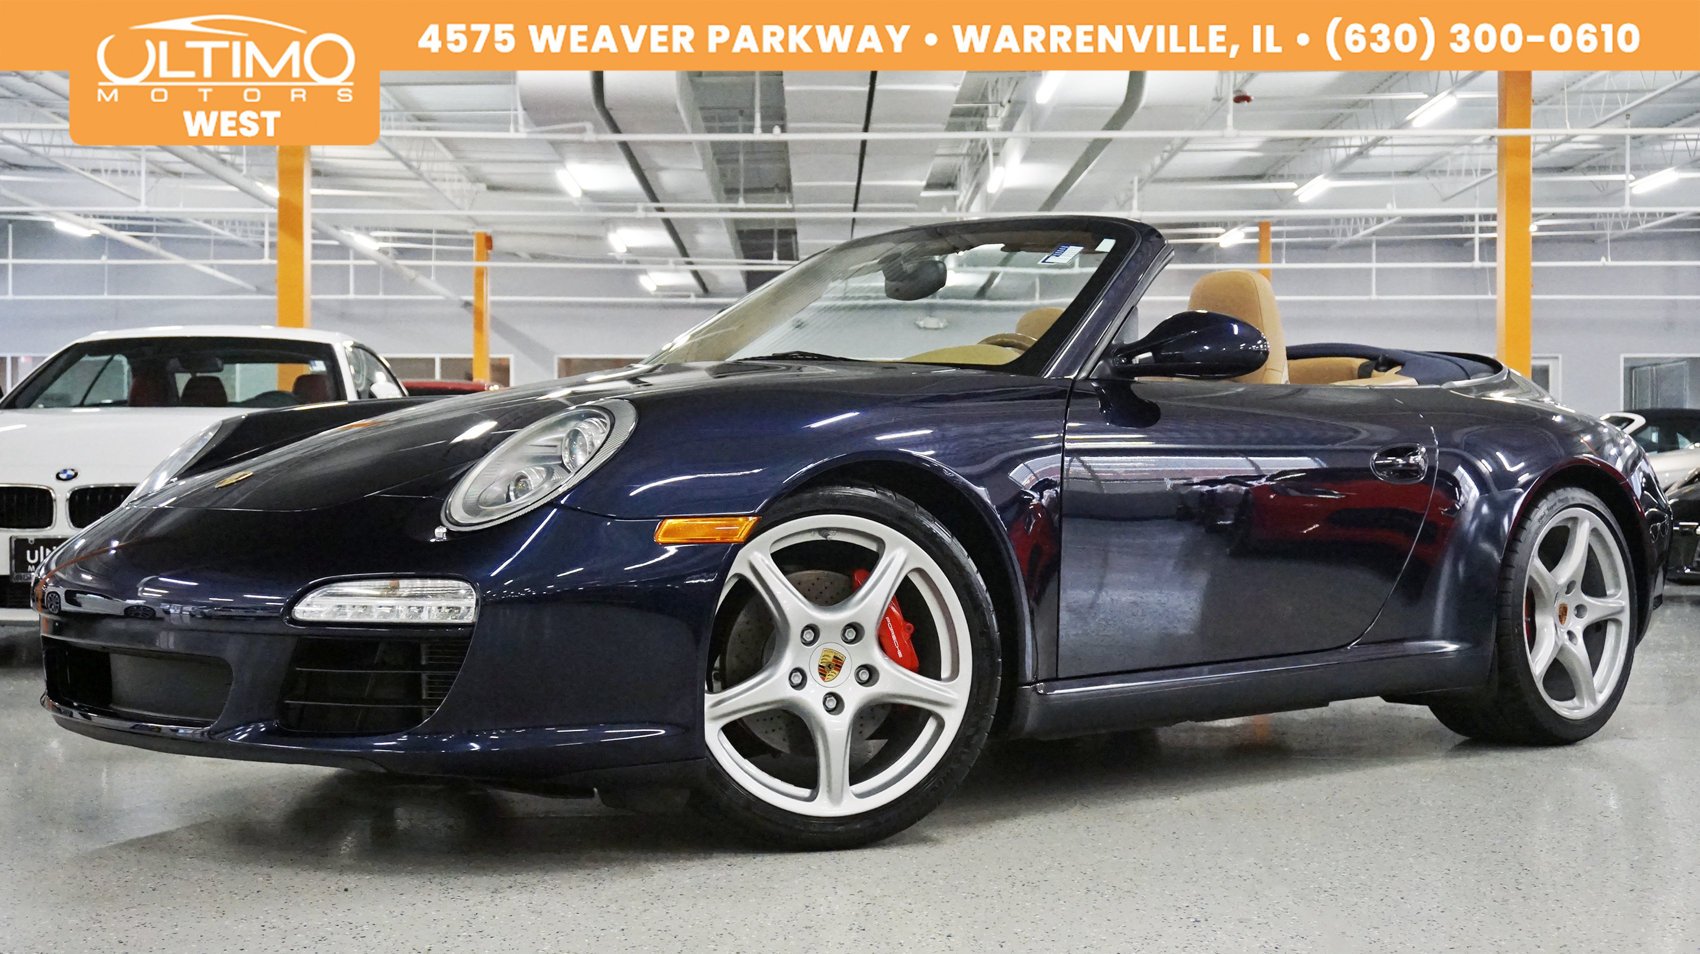 Pre-Owned 2009 Porsche 911 Carrera S Cab, PDK, Navigation, Bluetooth, Msrp$112,000